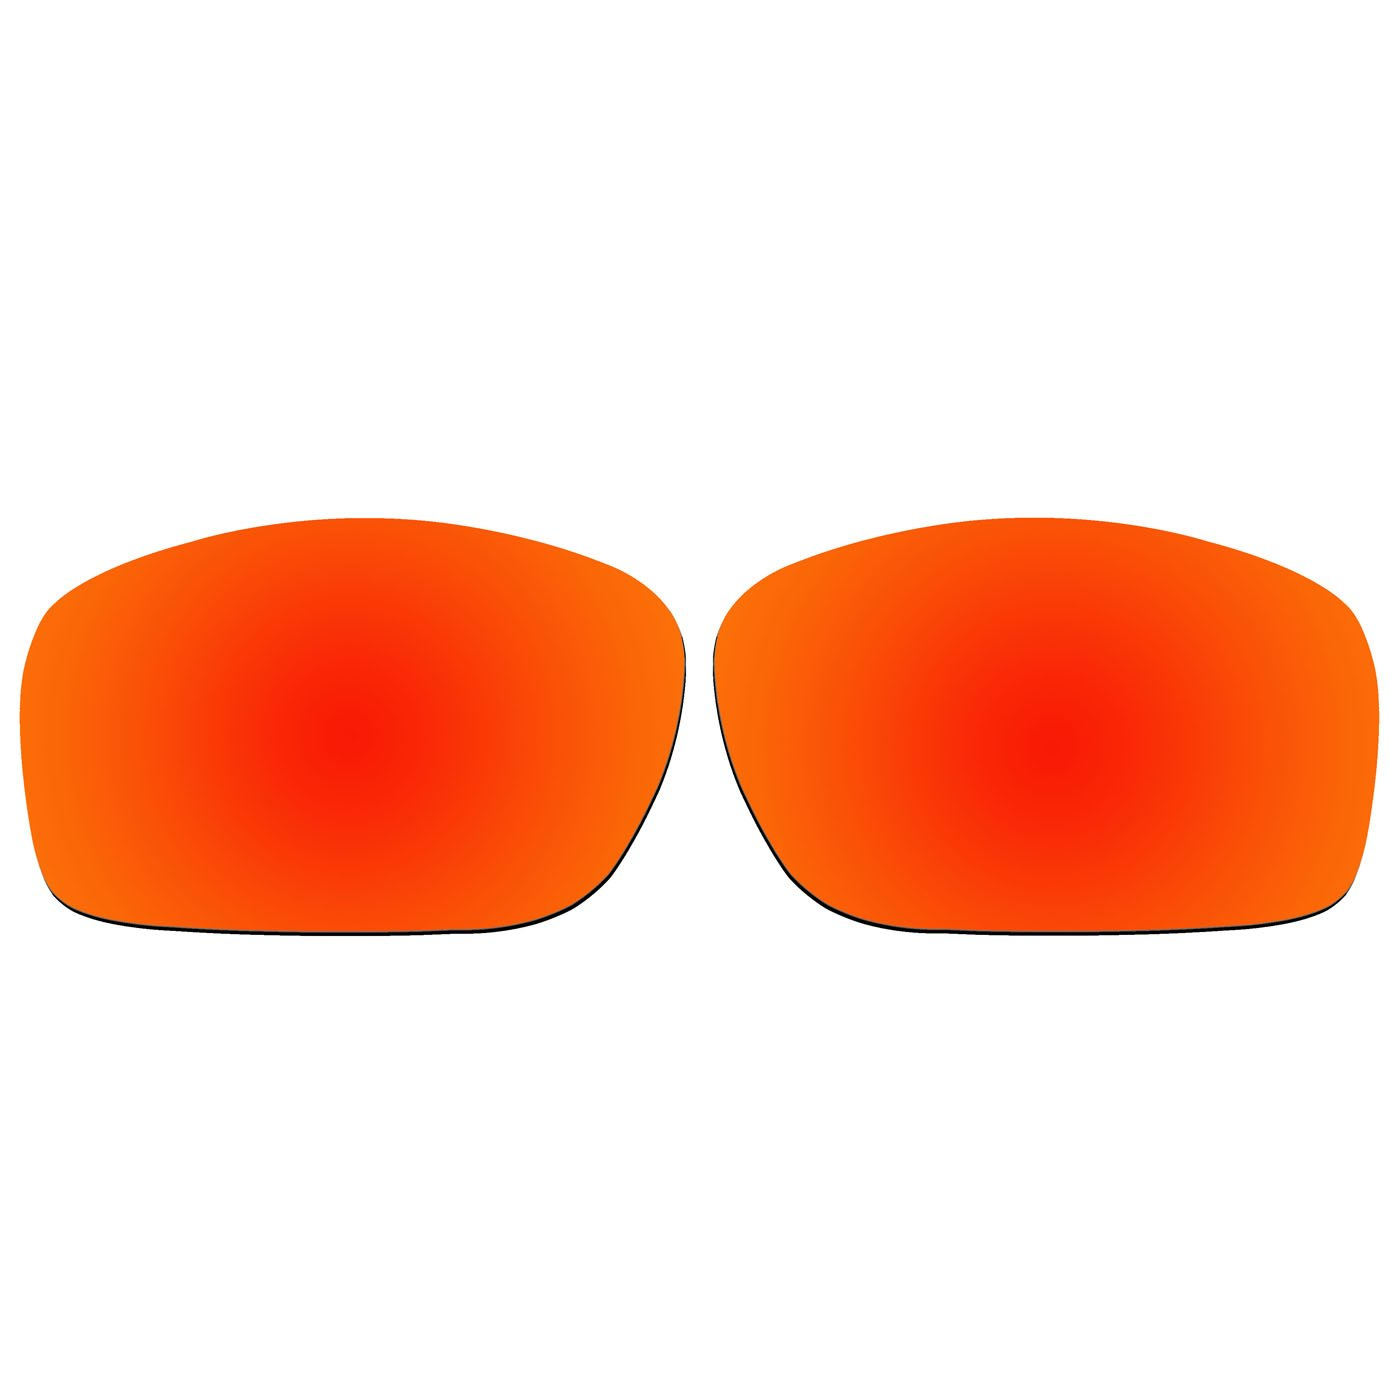 ACOMPATIBLE Replacement Lenses for Oakley Scalpel Sunglasses OO9095